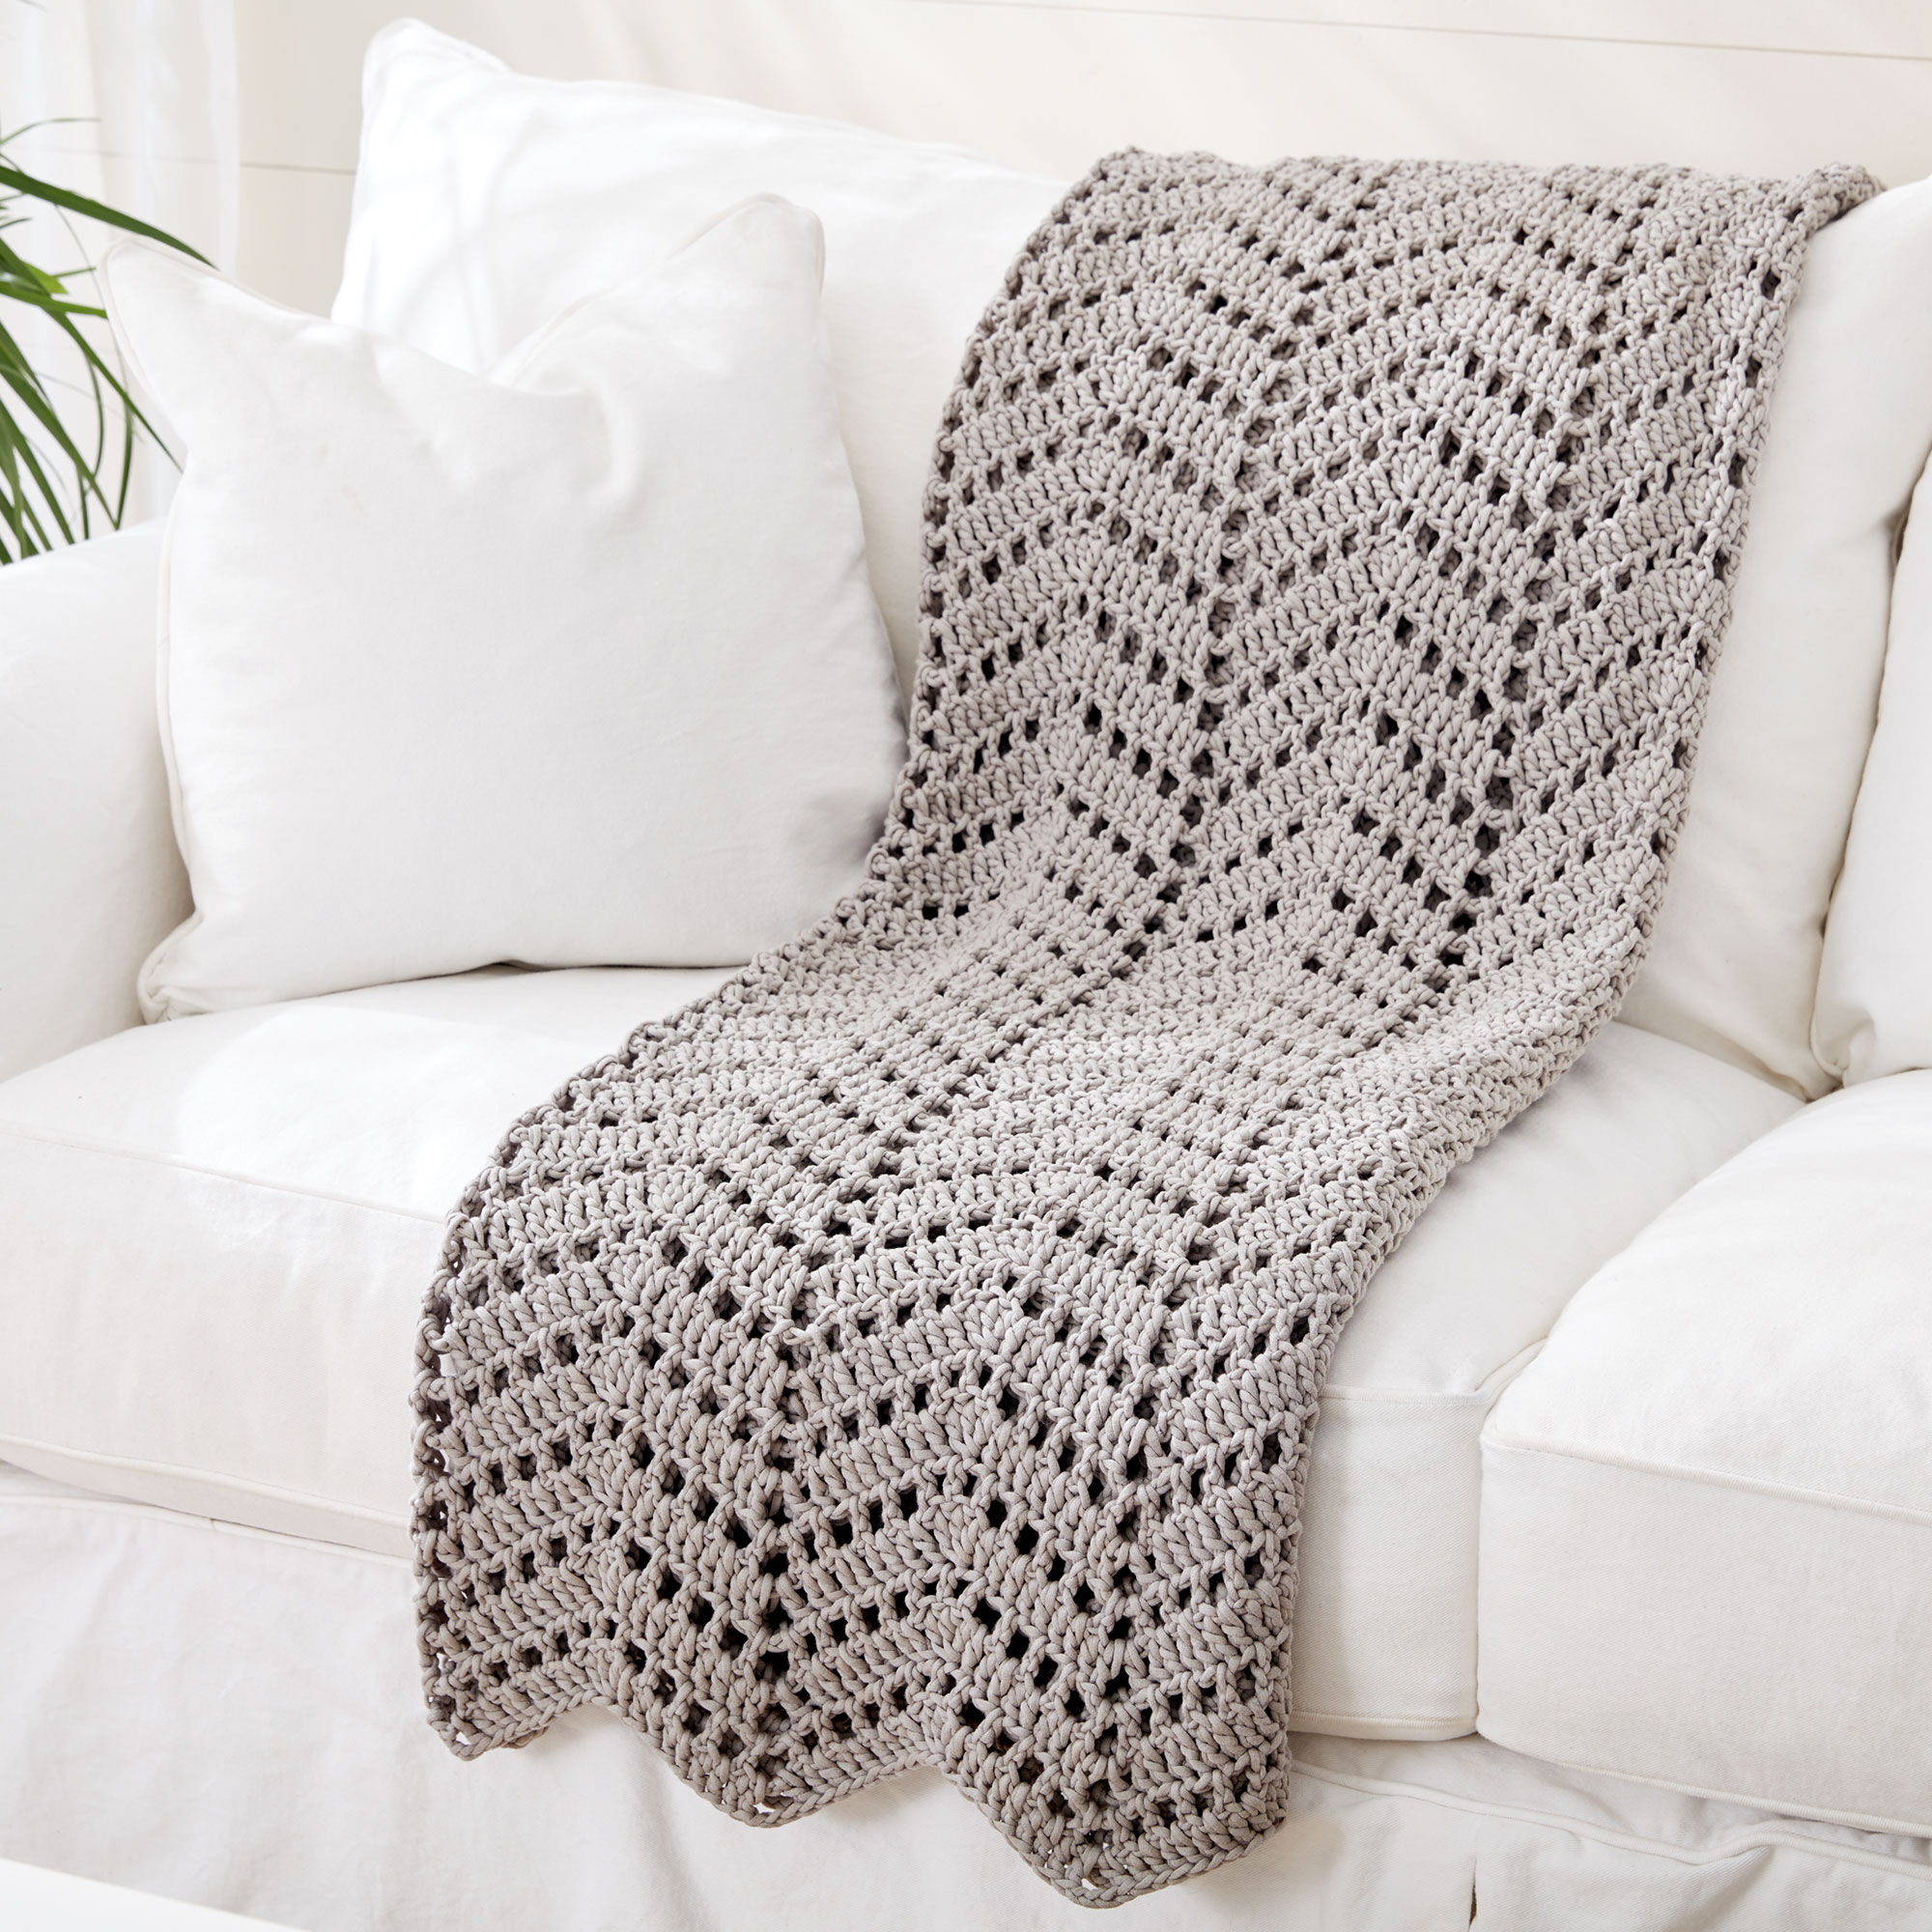 Bernat Ripples In The Sand Crochet Afghan | Yarnspirations